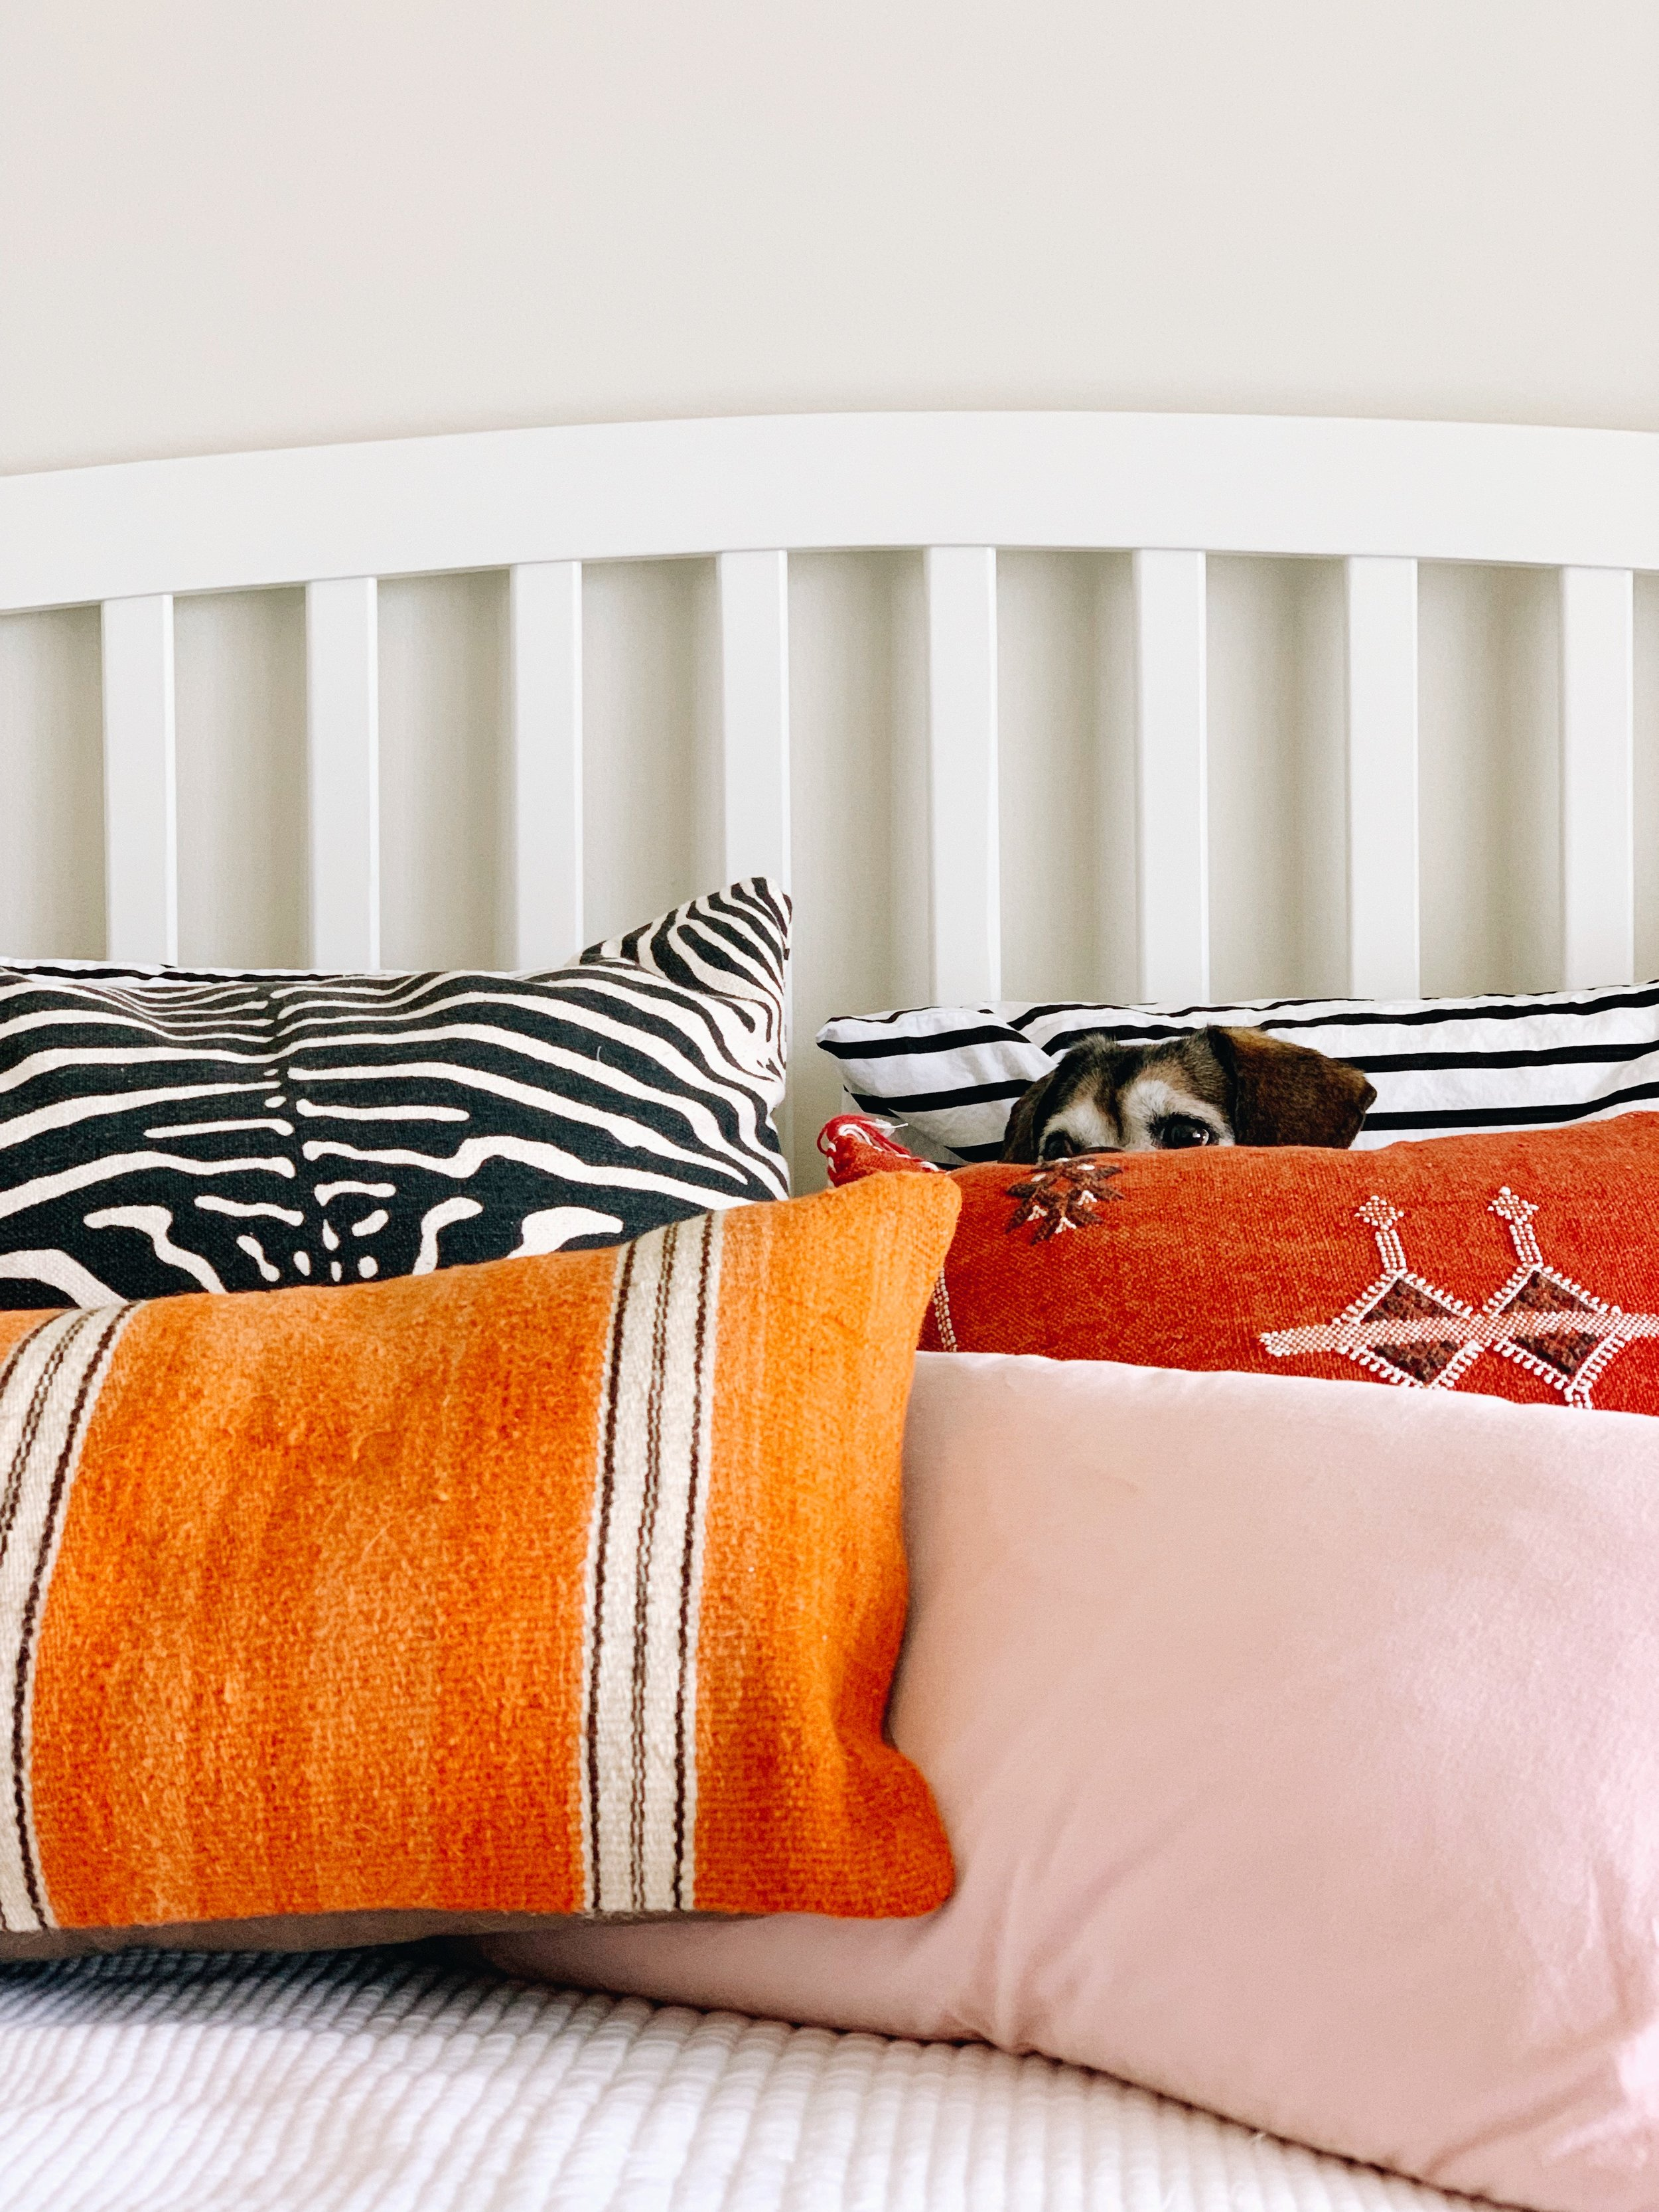 how much orange is too much orange… - also, how many pillows are too many pillows?fenway's been enjoying this pile of orange and pink with punchy black & white accents in our new-ish guest room (former home office). I still need to find stuff for the walls, a new lamp and a bureau but I like where it's headed.